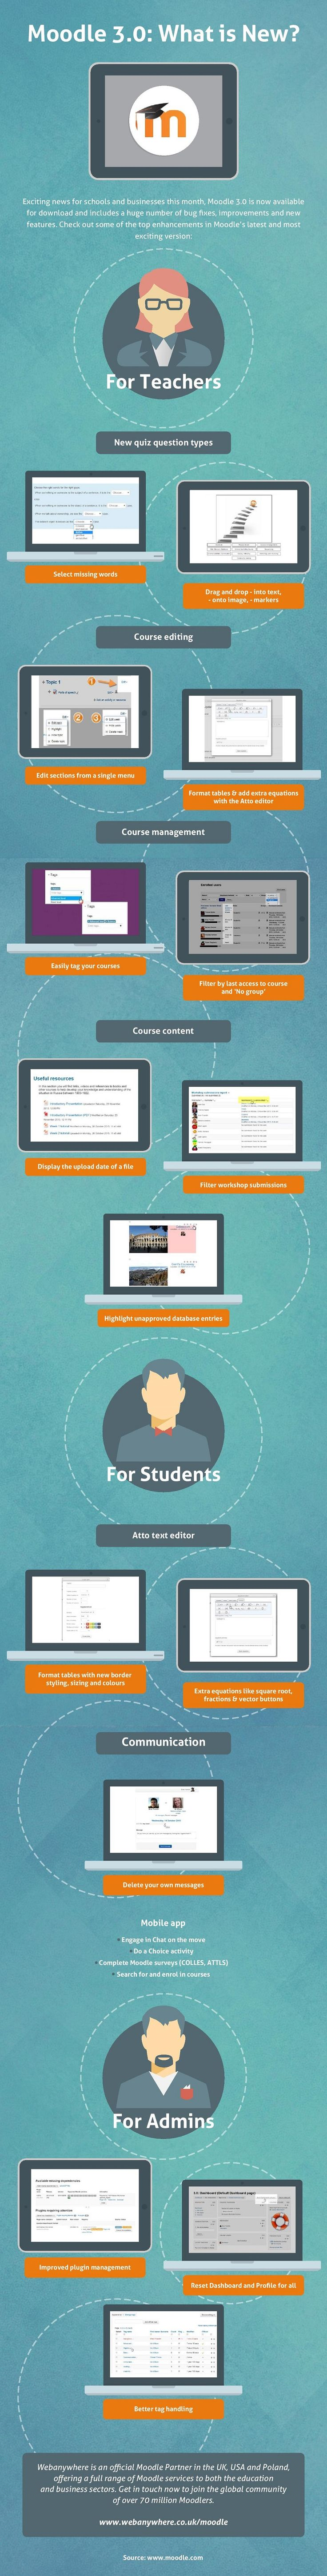 What's New in Moodle 3.0 Infographic - http://elearninginfographics.com/whats-new-moodle-3-0-infographic/